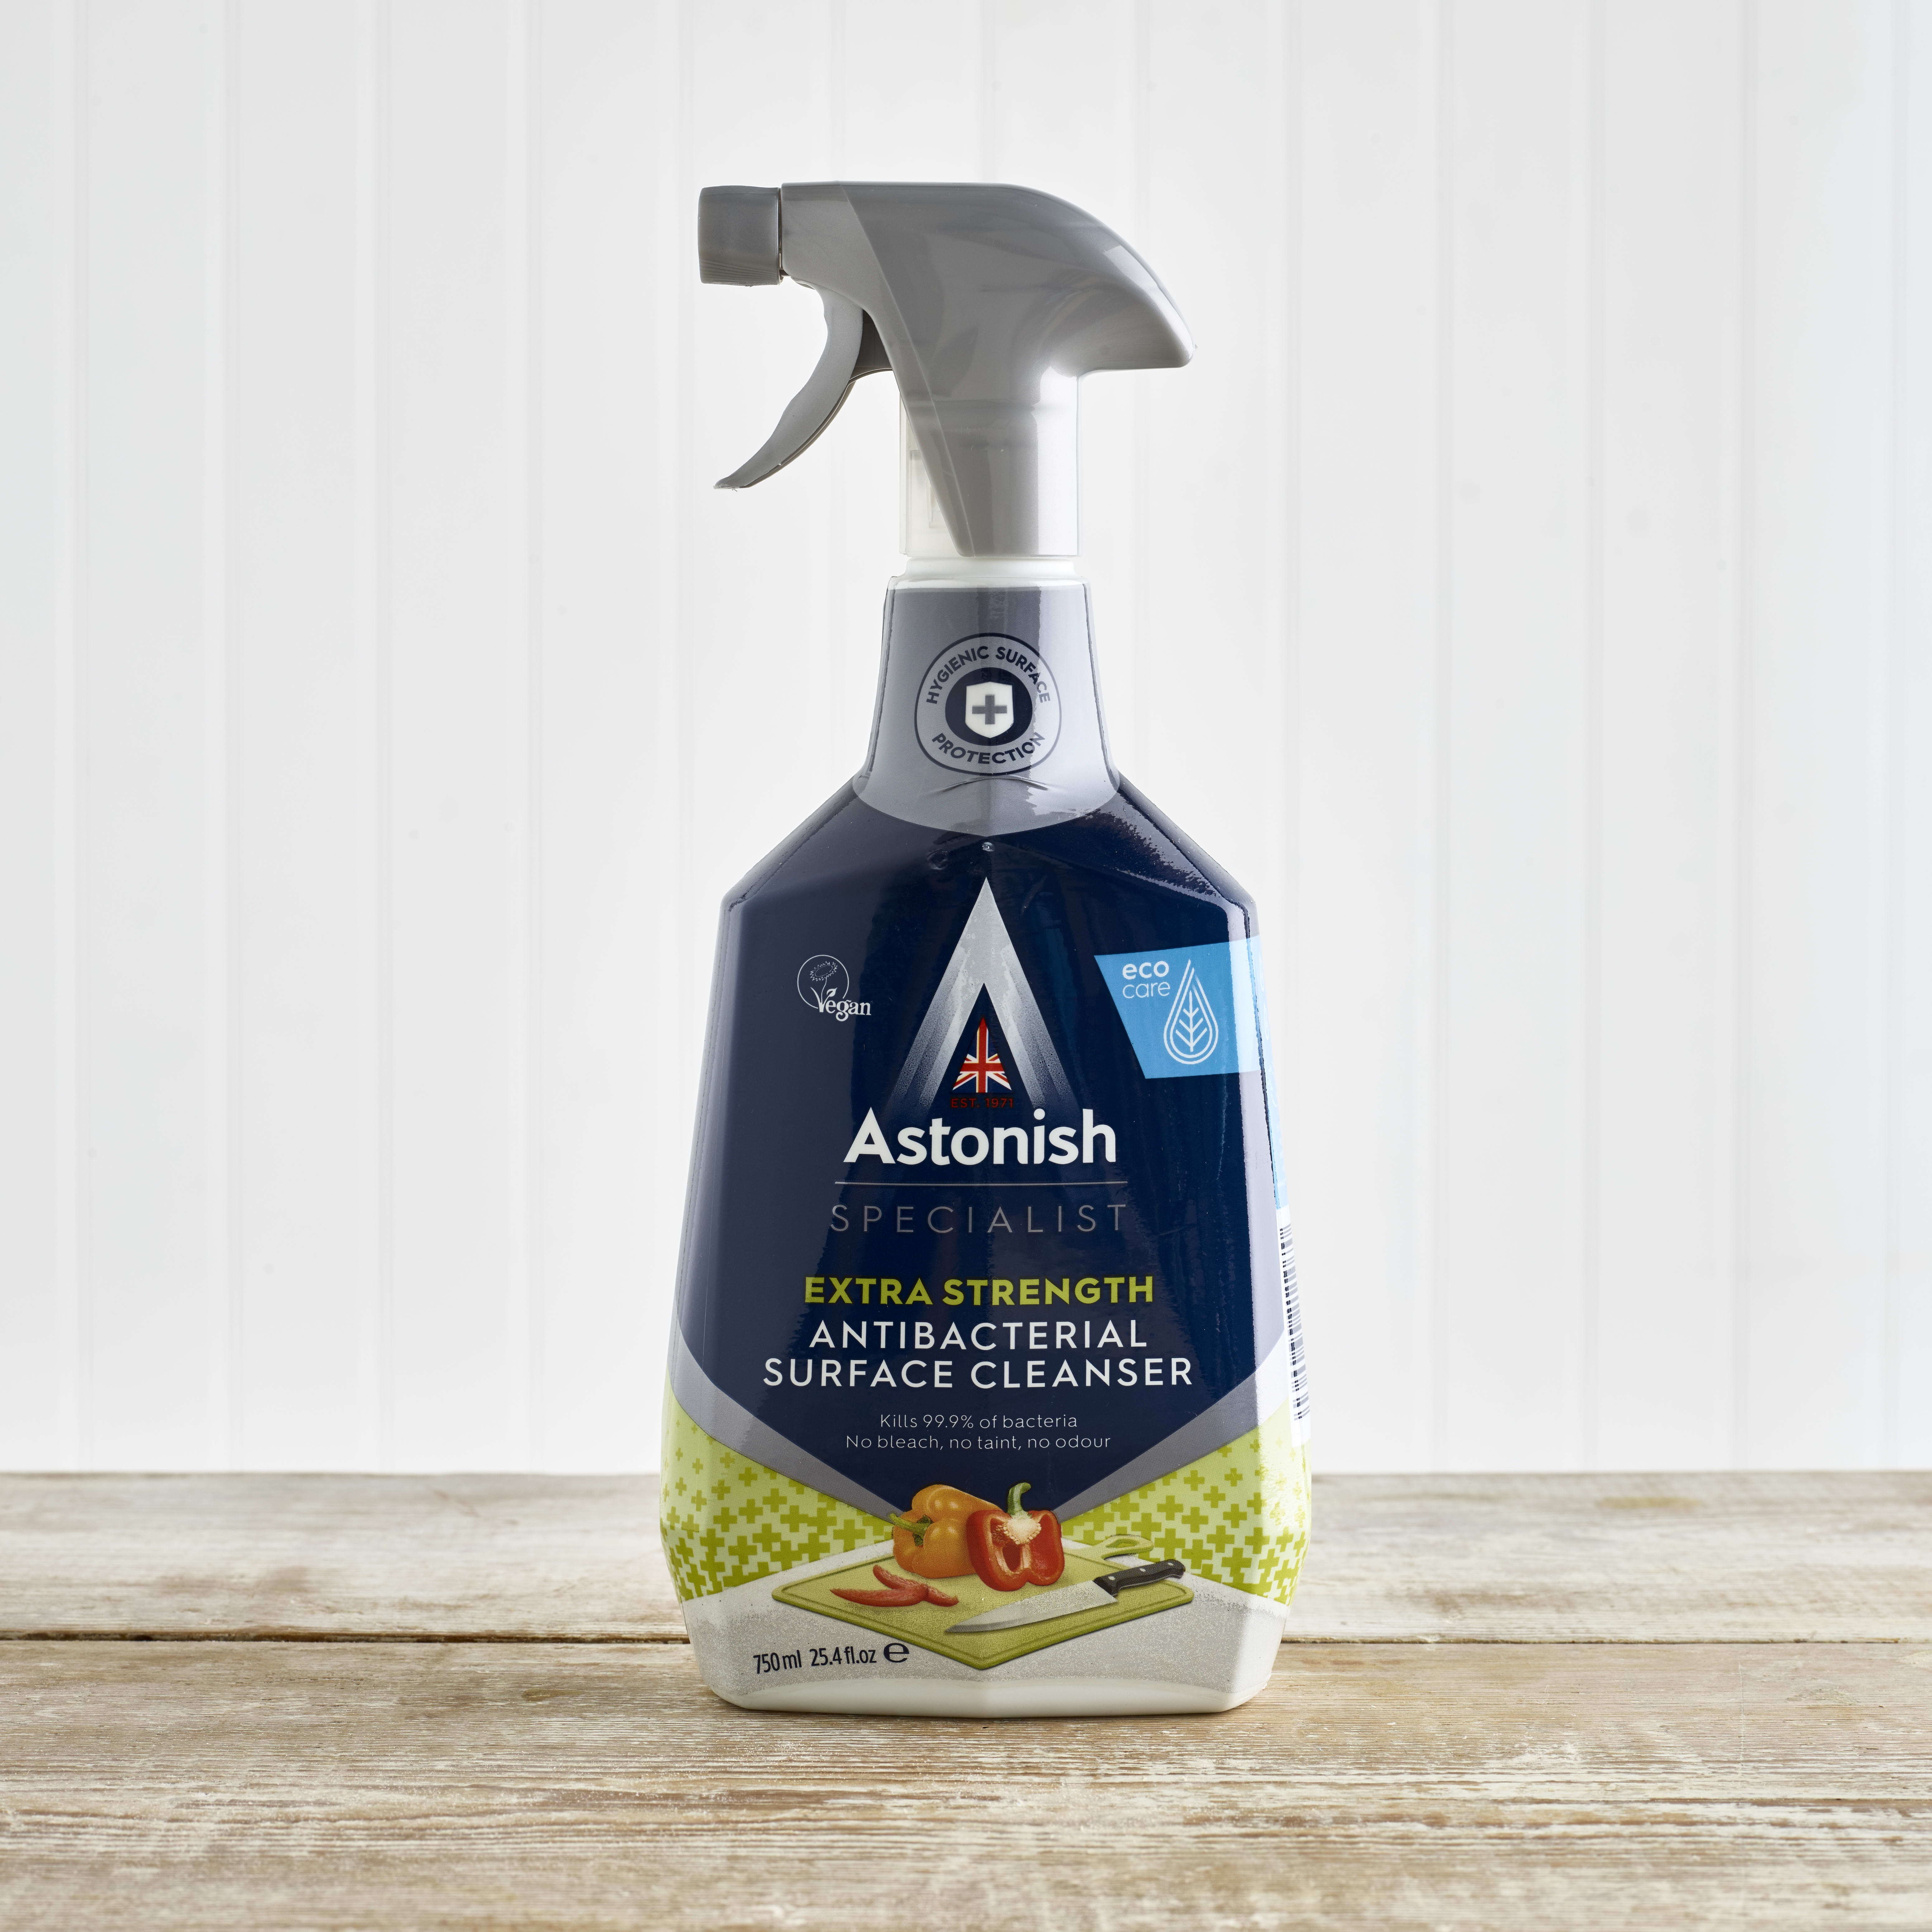 Astonish Premium Edition Anti Bacterial Surface Cleaner, 750ml